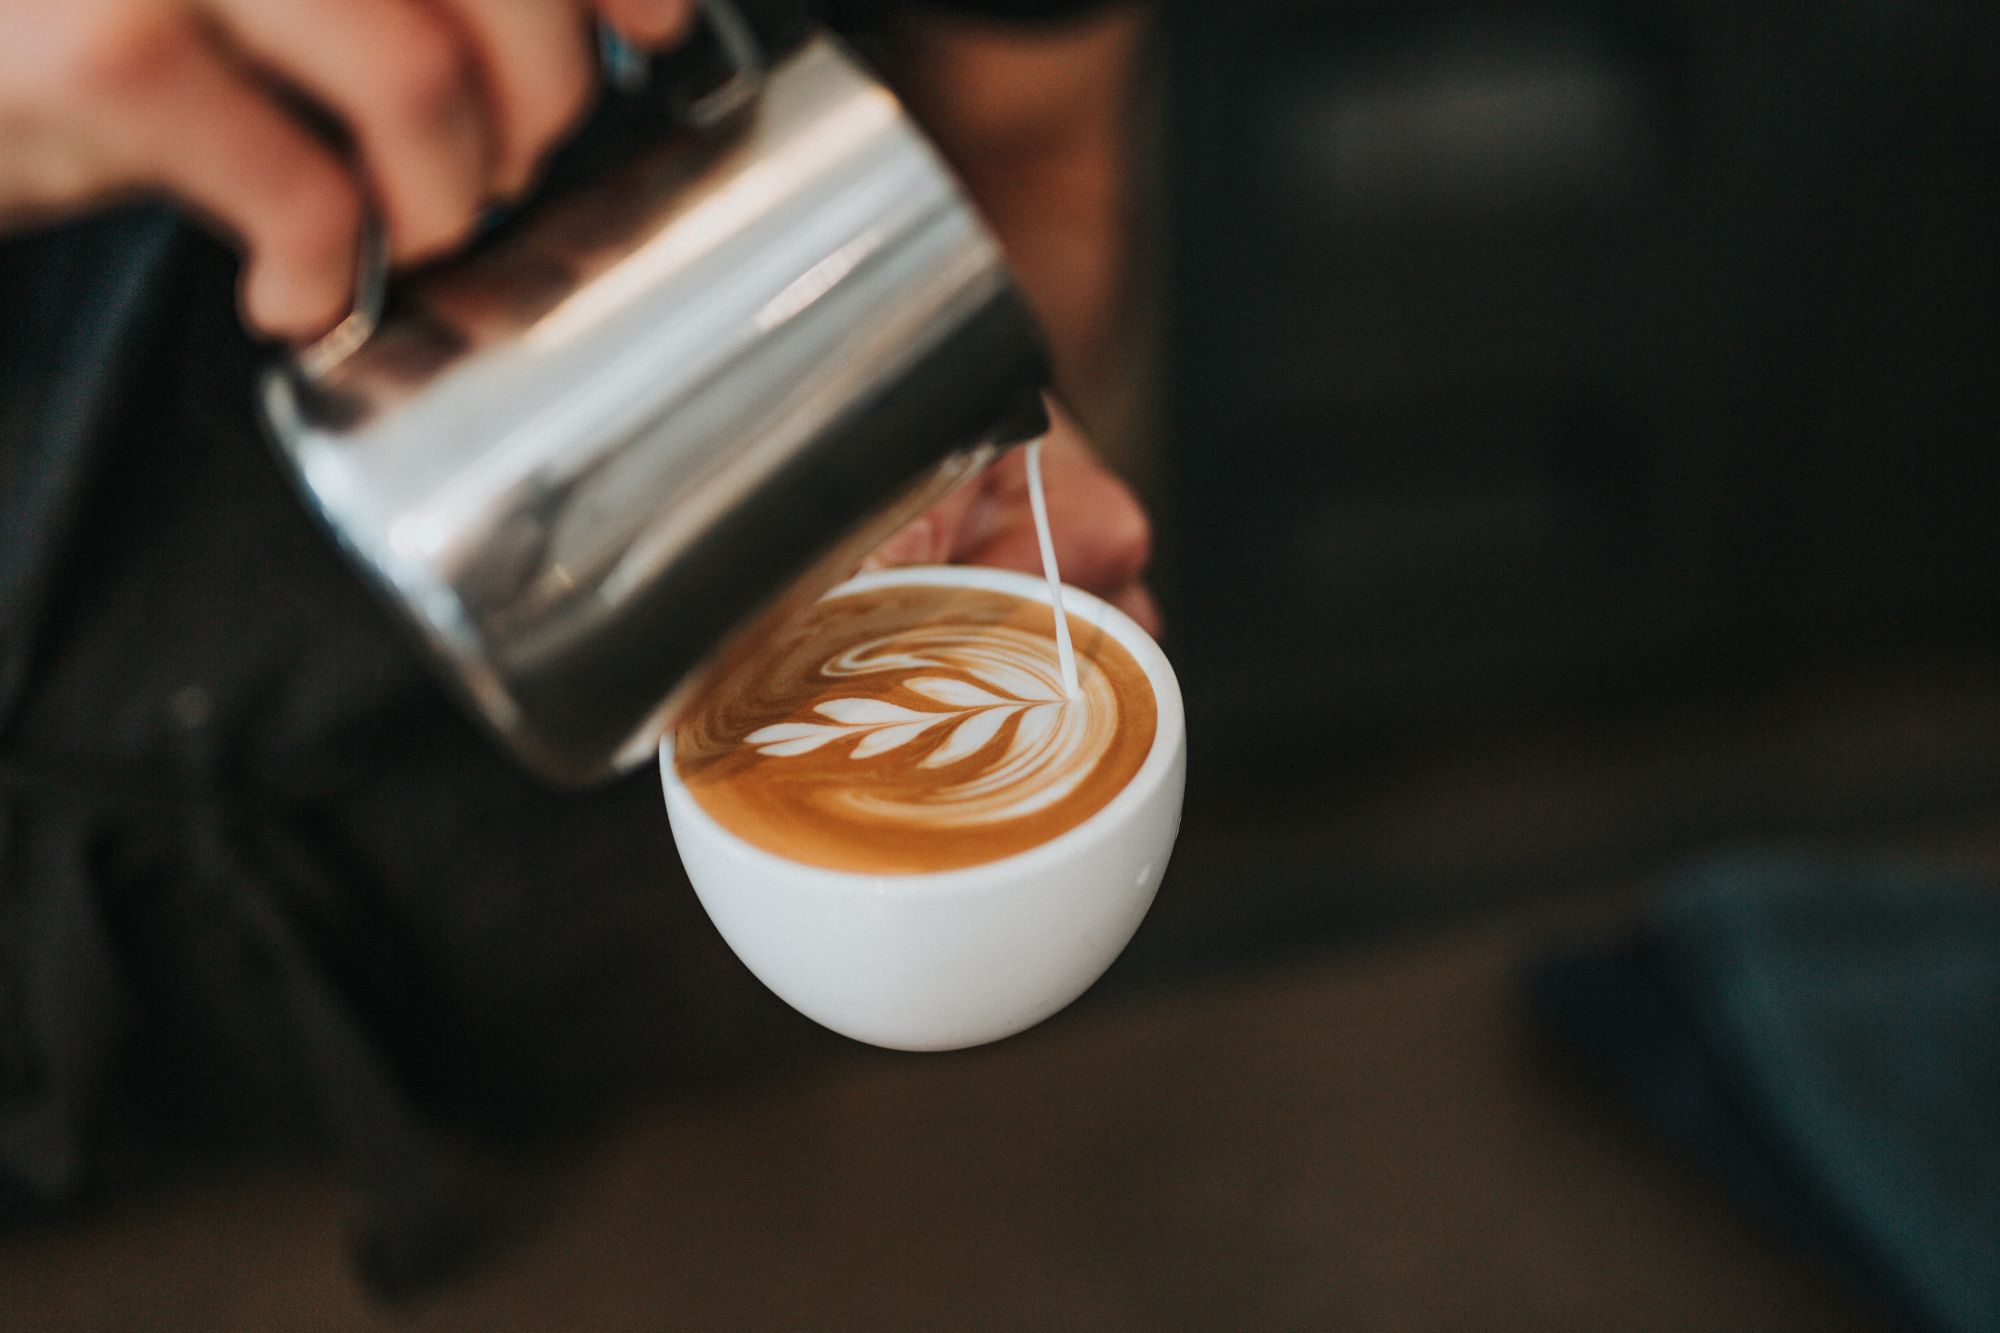 Neighbourhood Guide: Where To Get The Best Coffee In Makati, Philippines This 2020